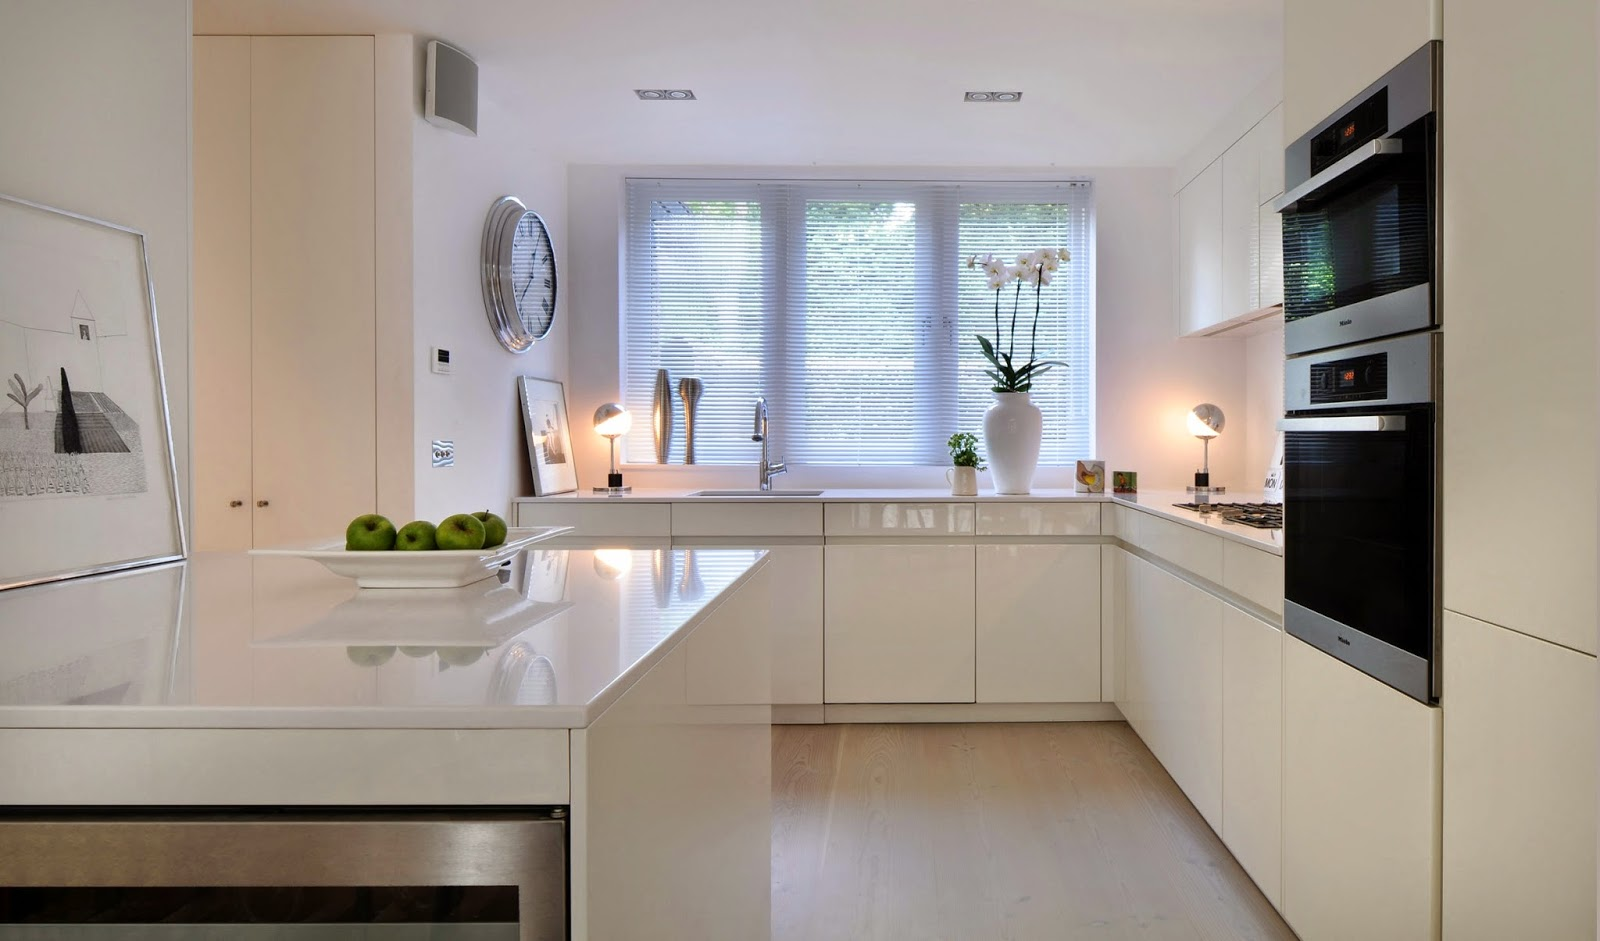 TOTAL WHITE KITCHEN